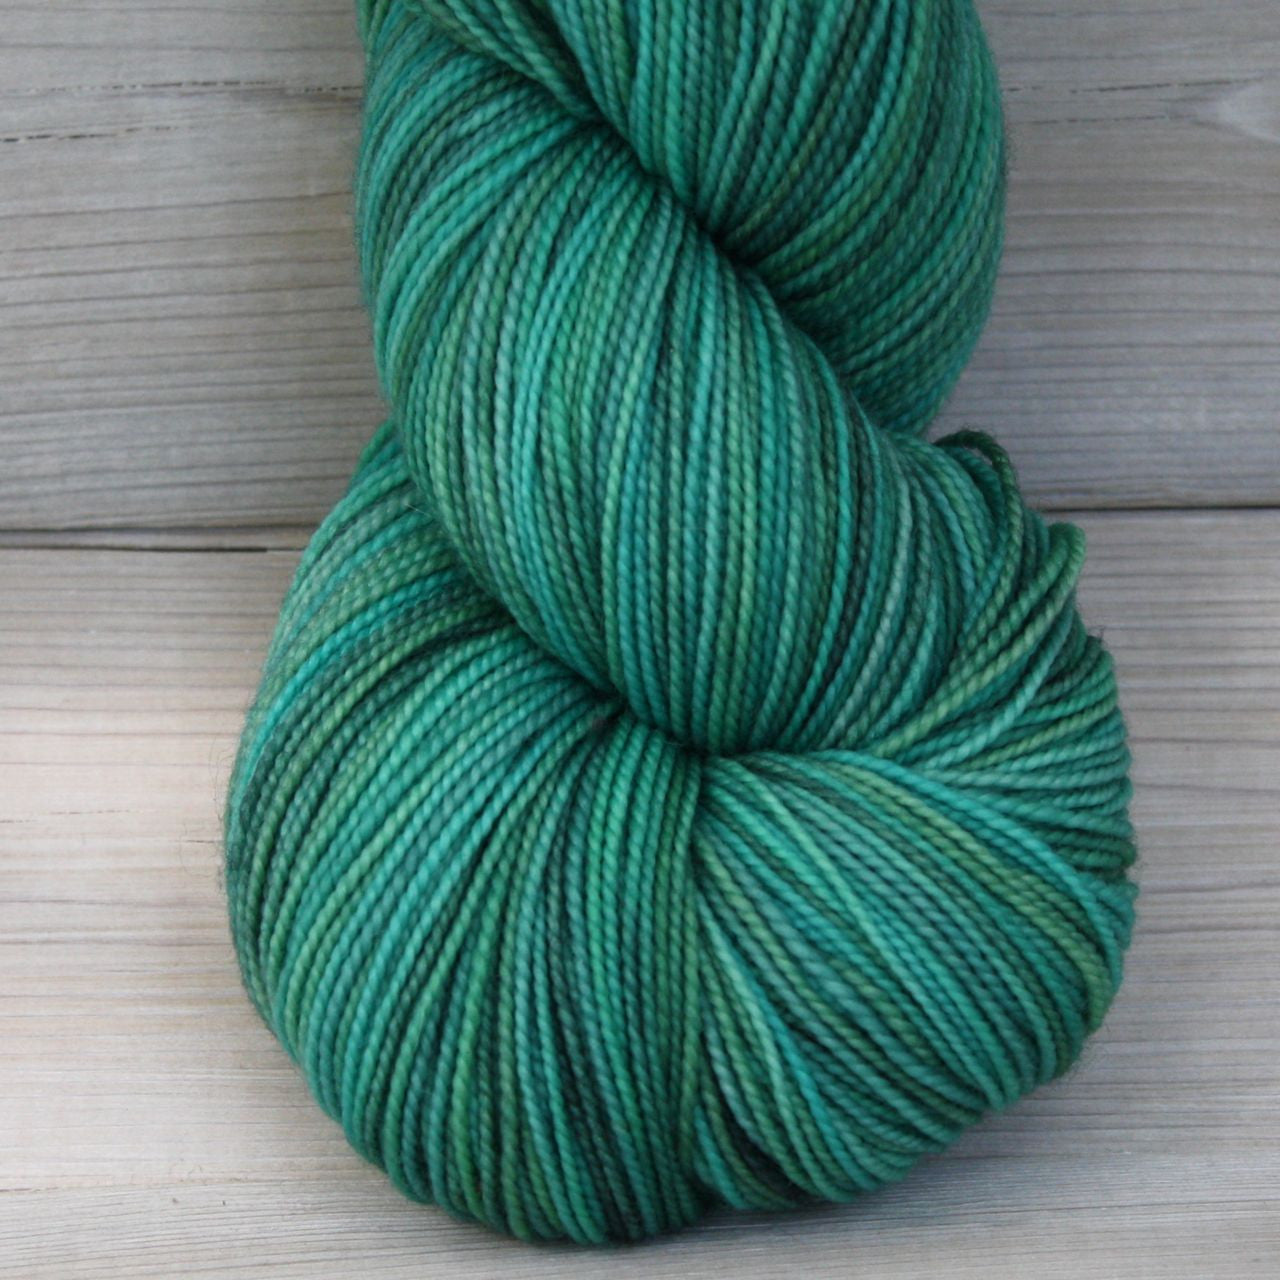 Celeste Yarn | Colorway: Aloe